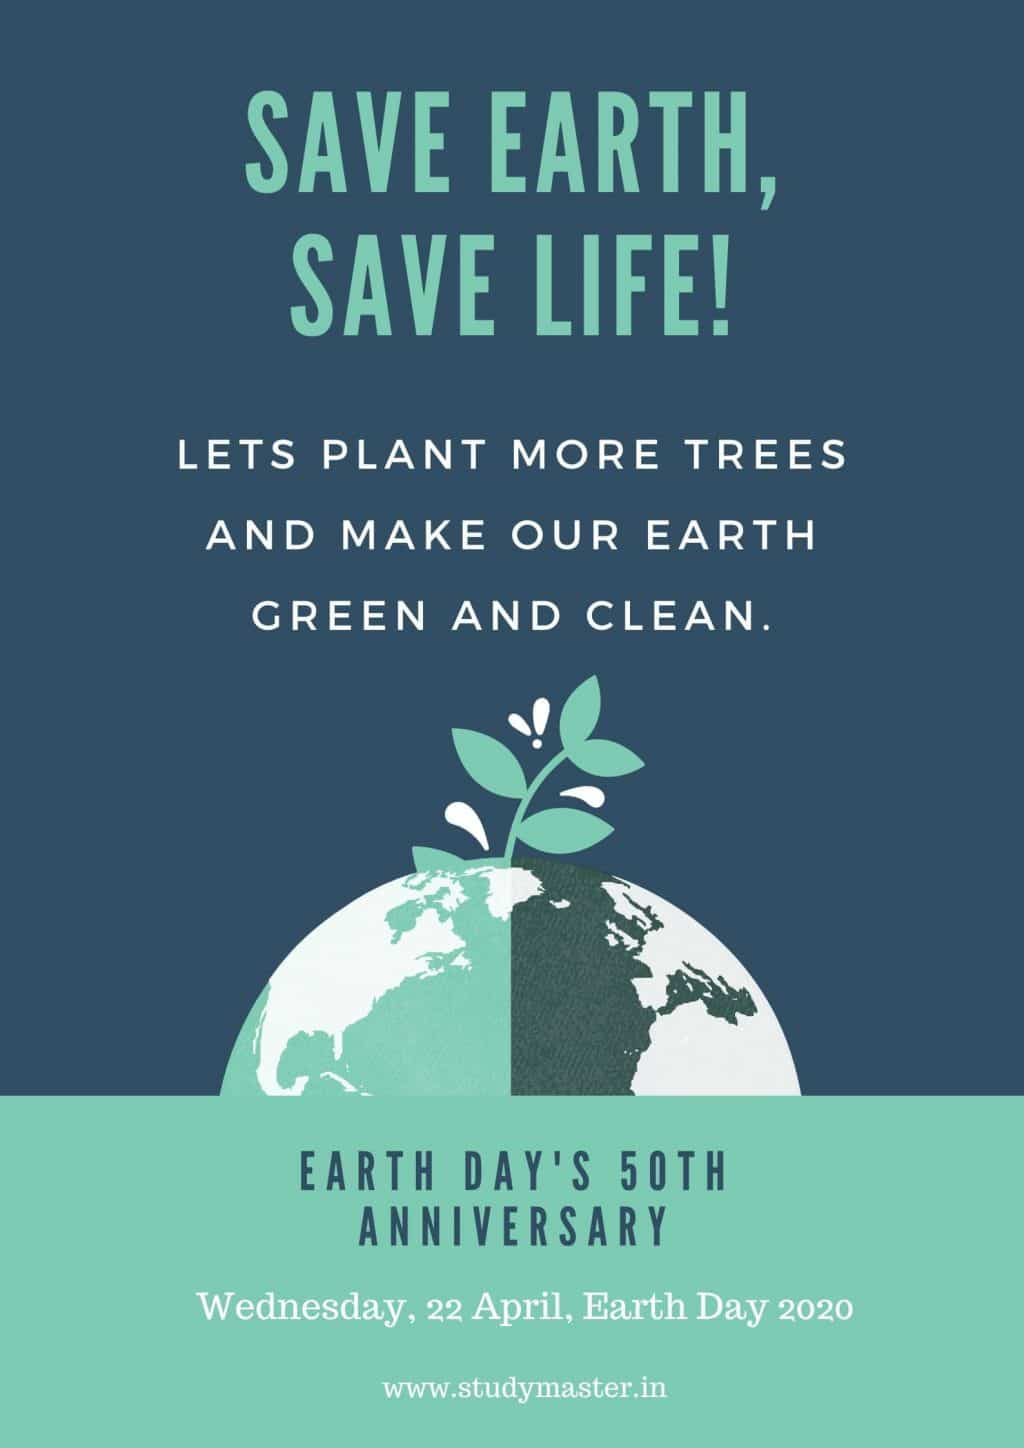 poster on how to save earth